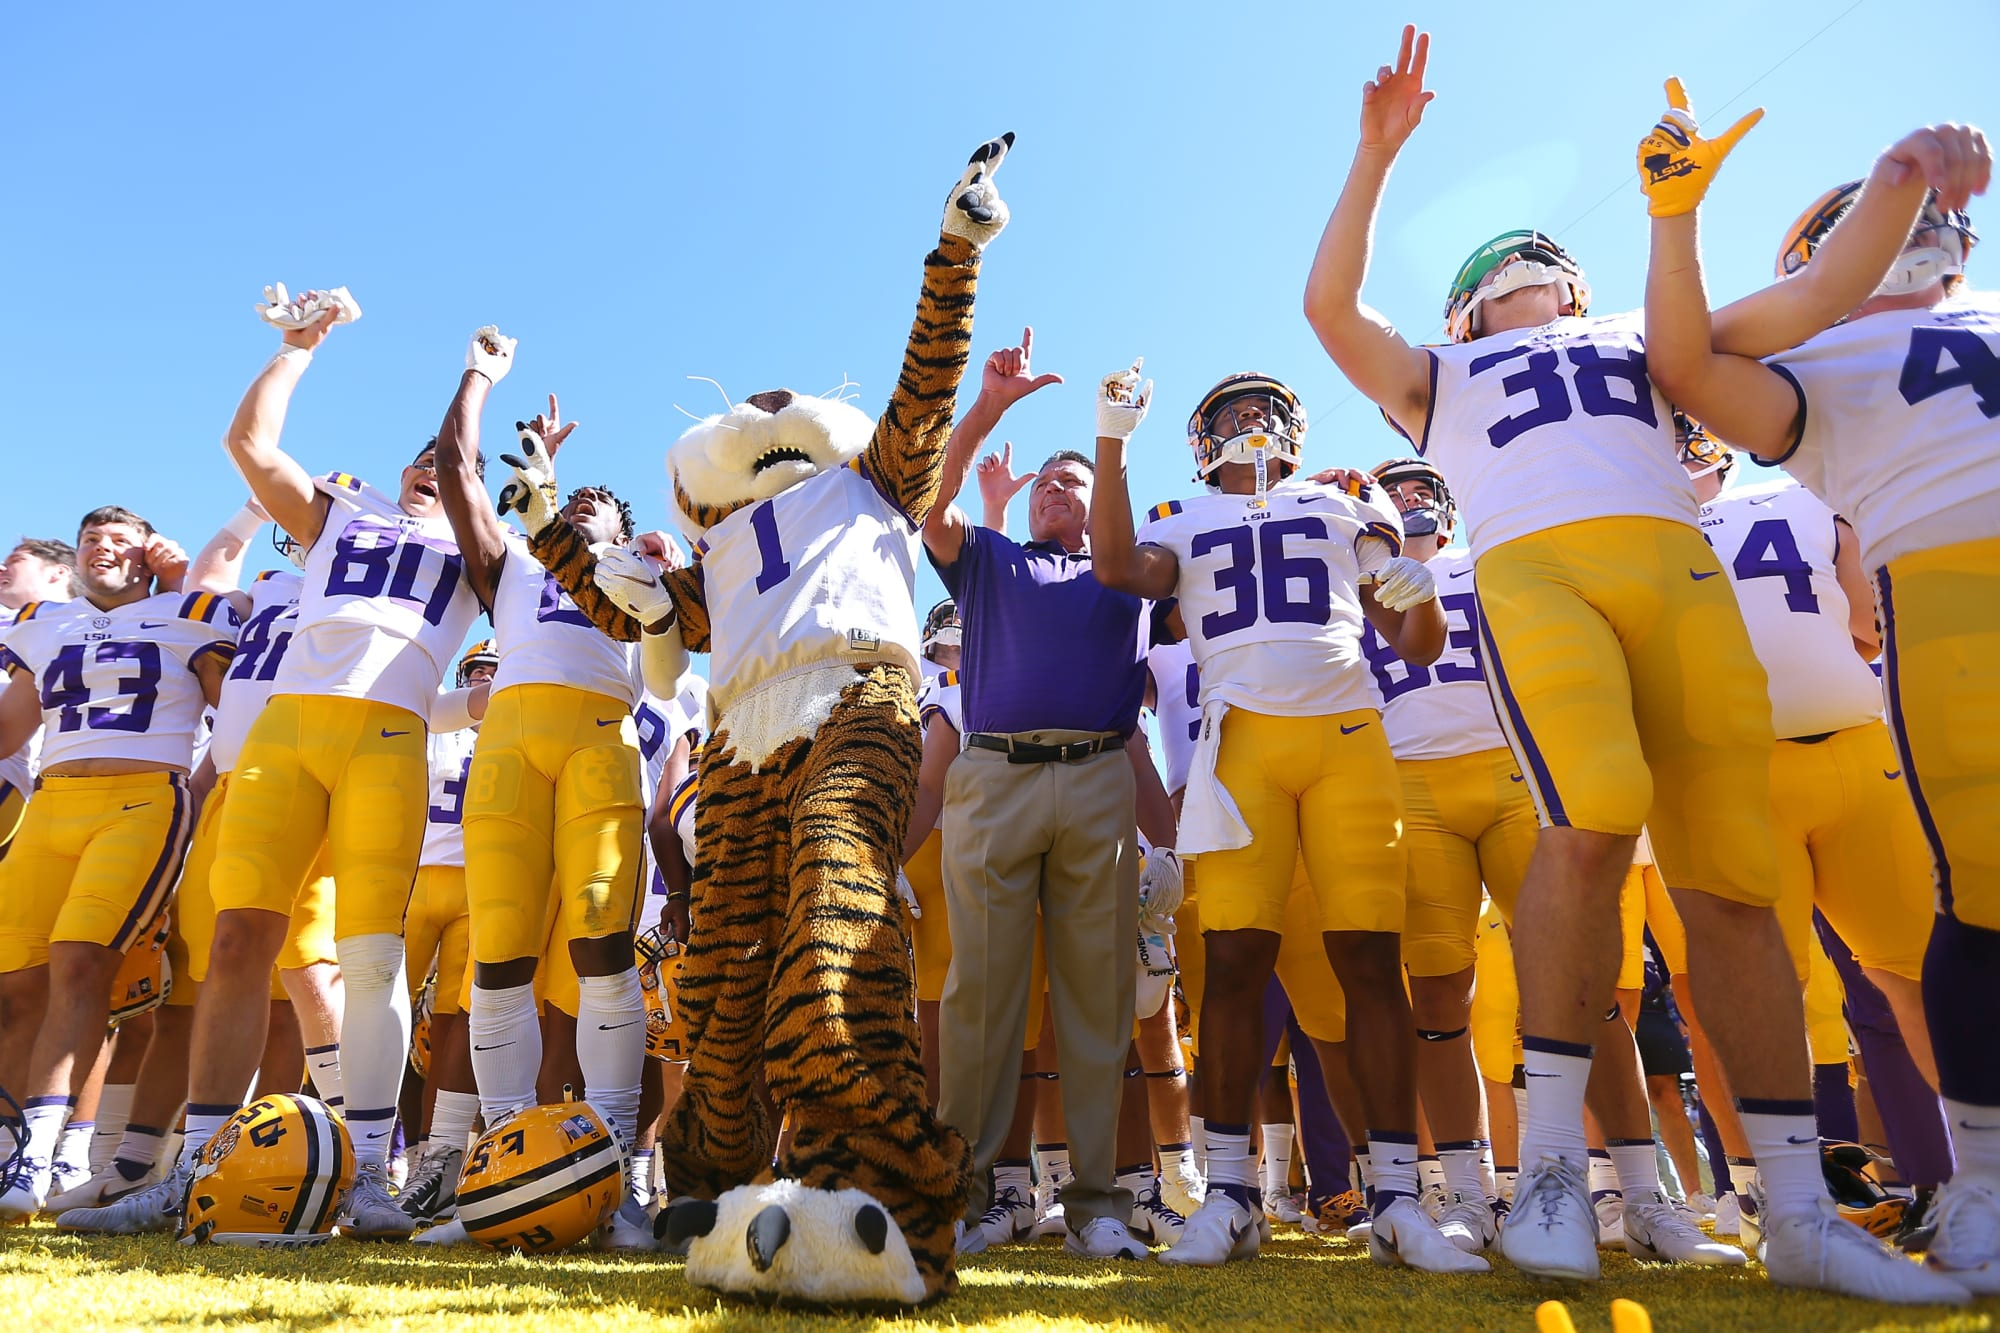 Look: Kirk Herbstreit apologized to LSU on Twitter after Tigers beat Florida